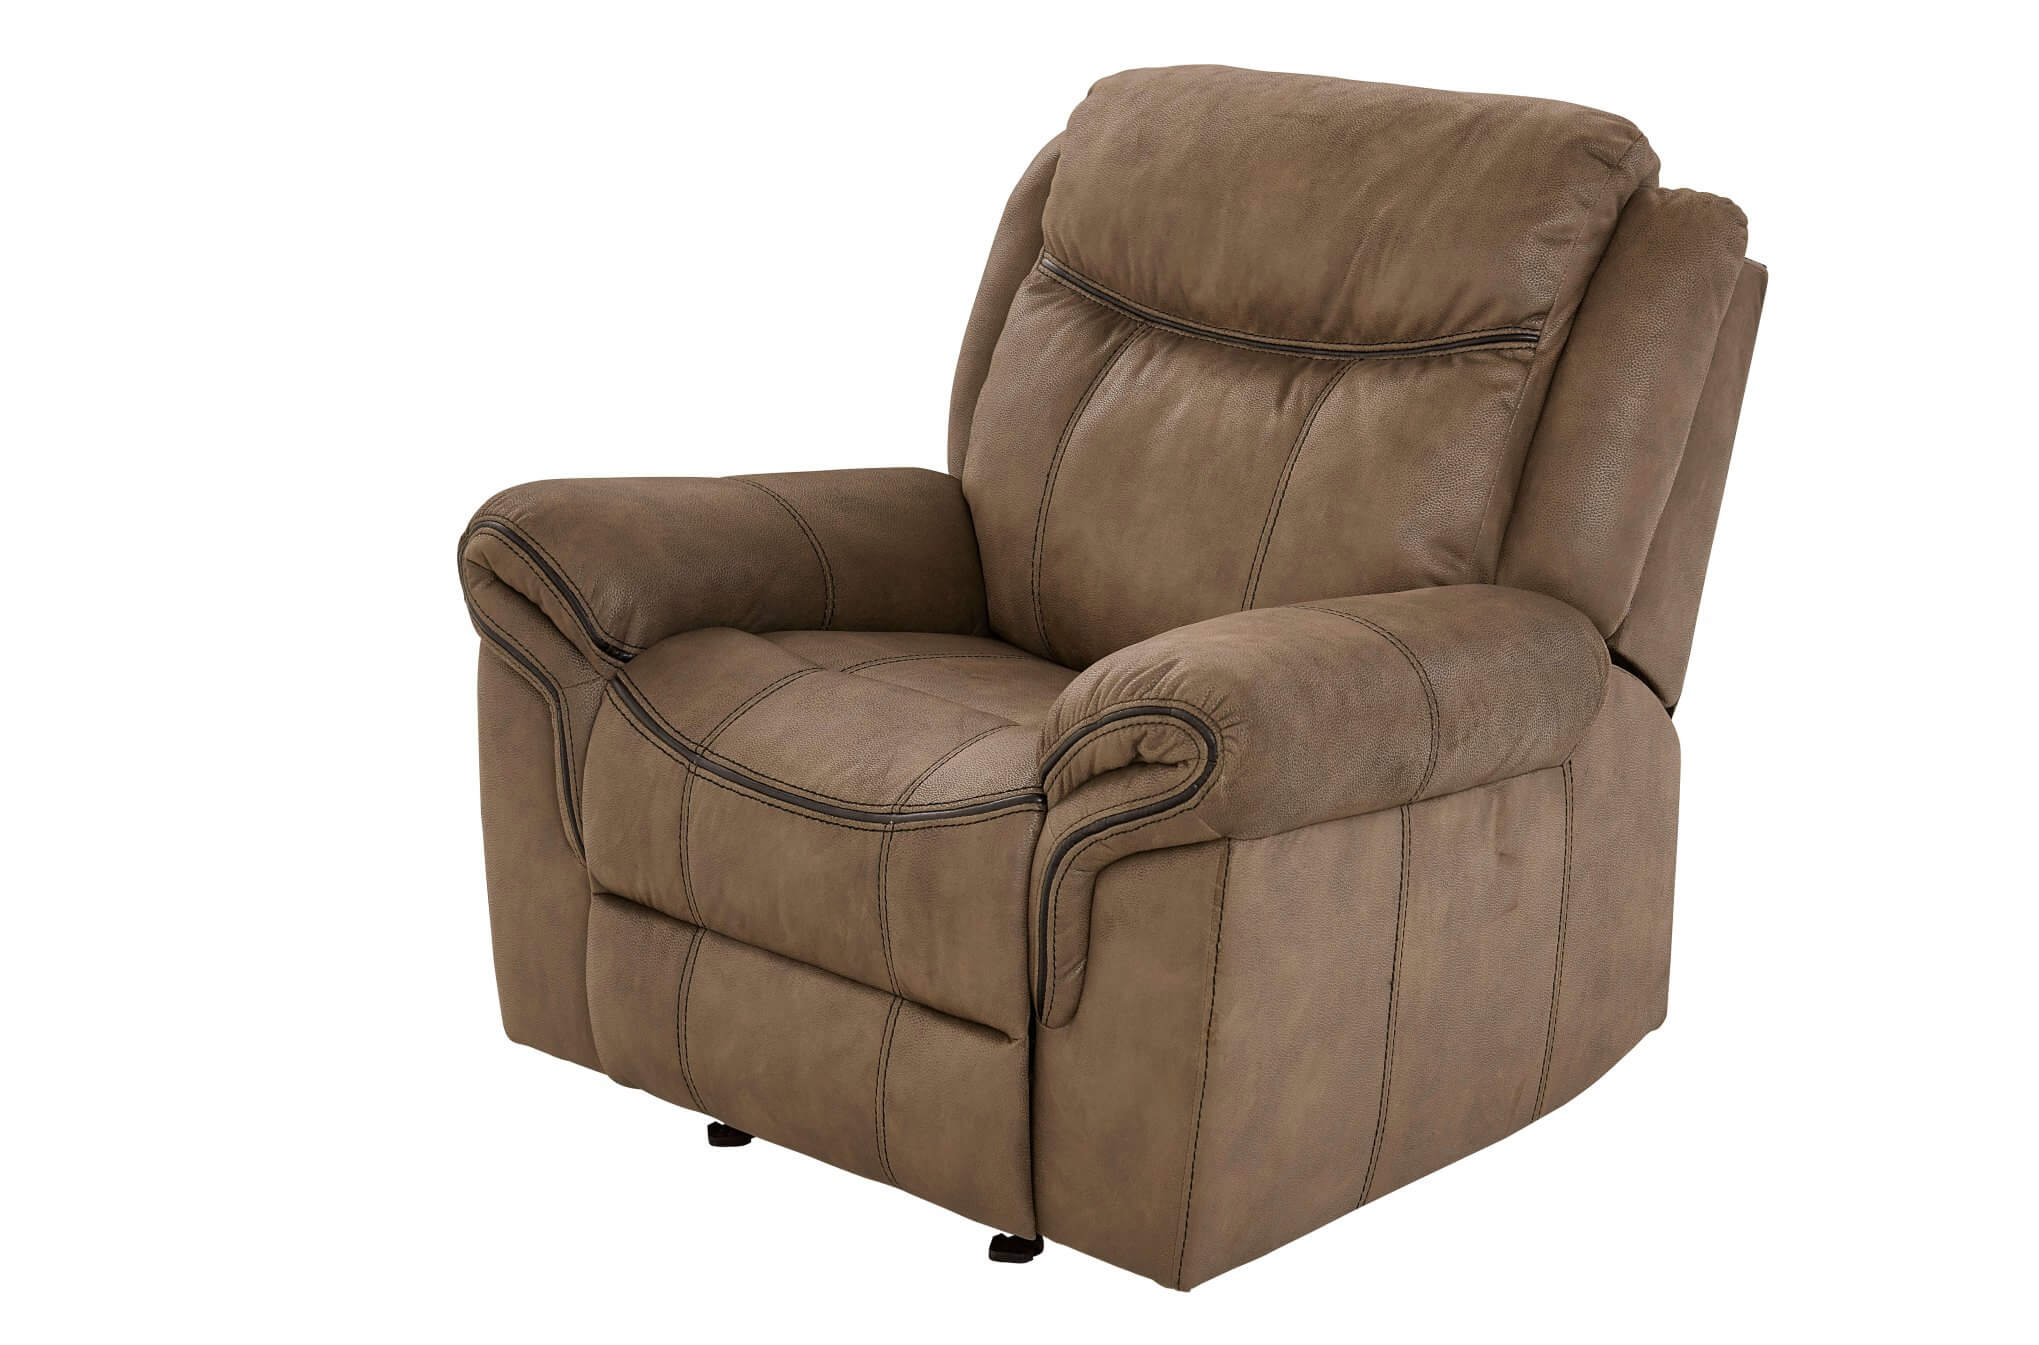 Knoxville Reclining Sofa And Loveseat Urban Furniture Outlet